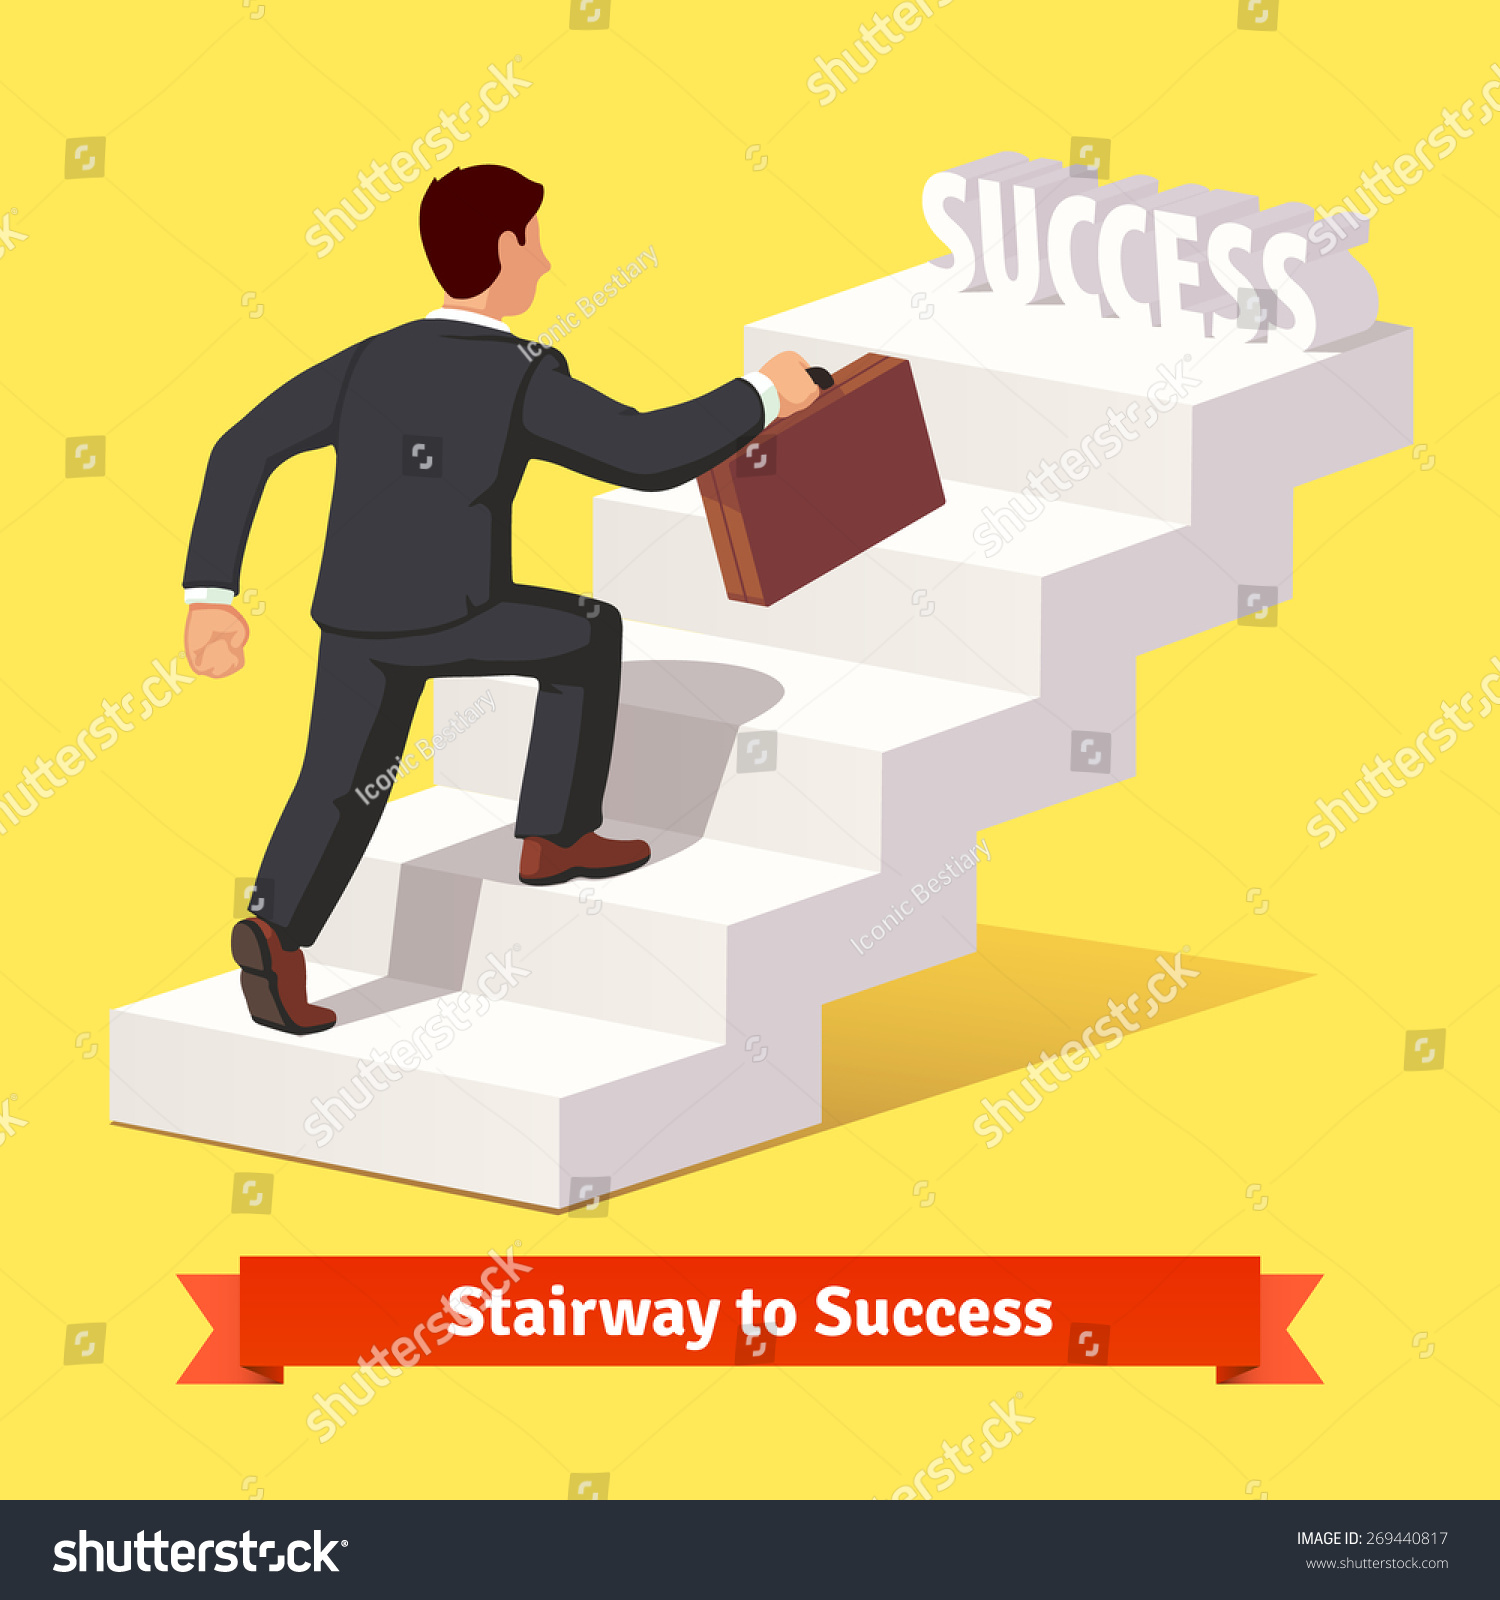 Businessman Black Suit Suitcase Climbing Stairs Stock Vector ... for Climbing Stairs To Success  56mzq